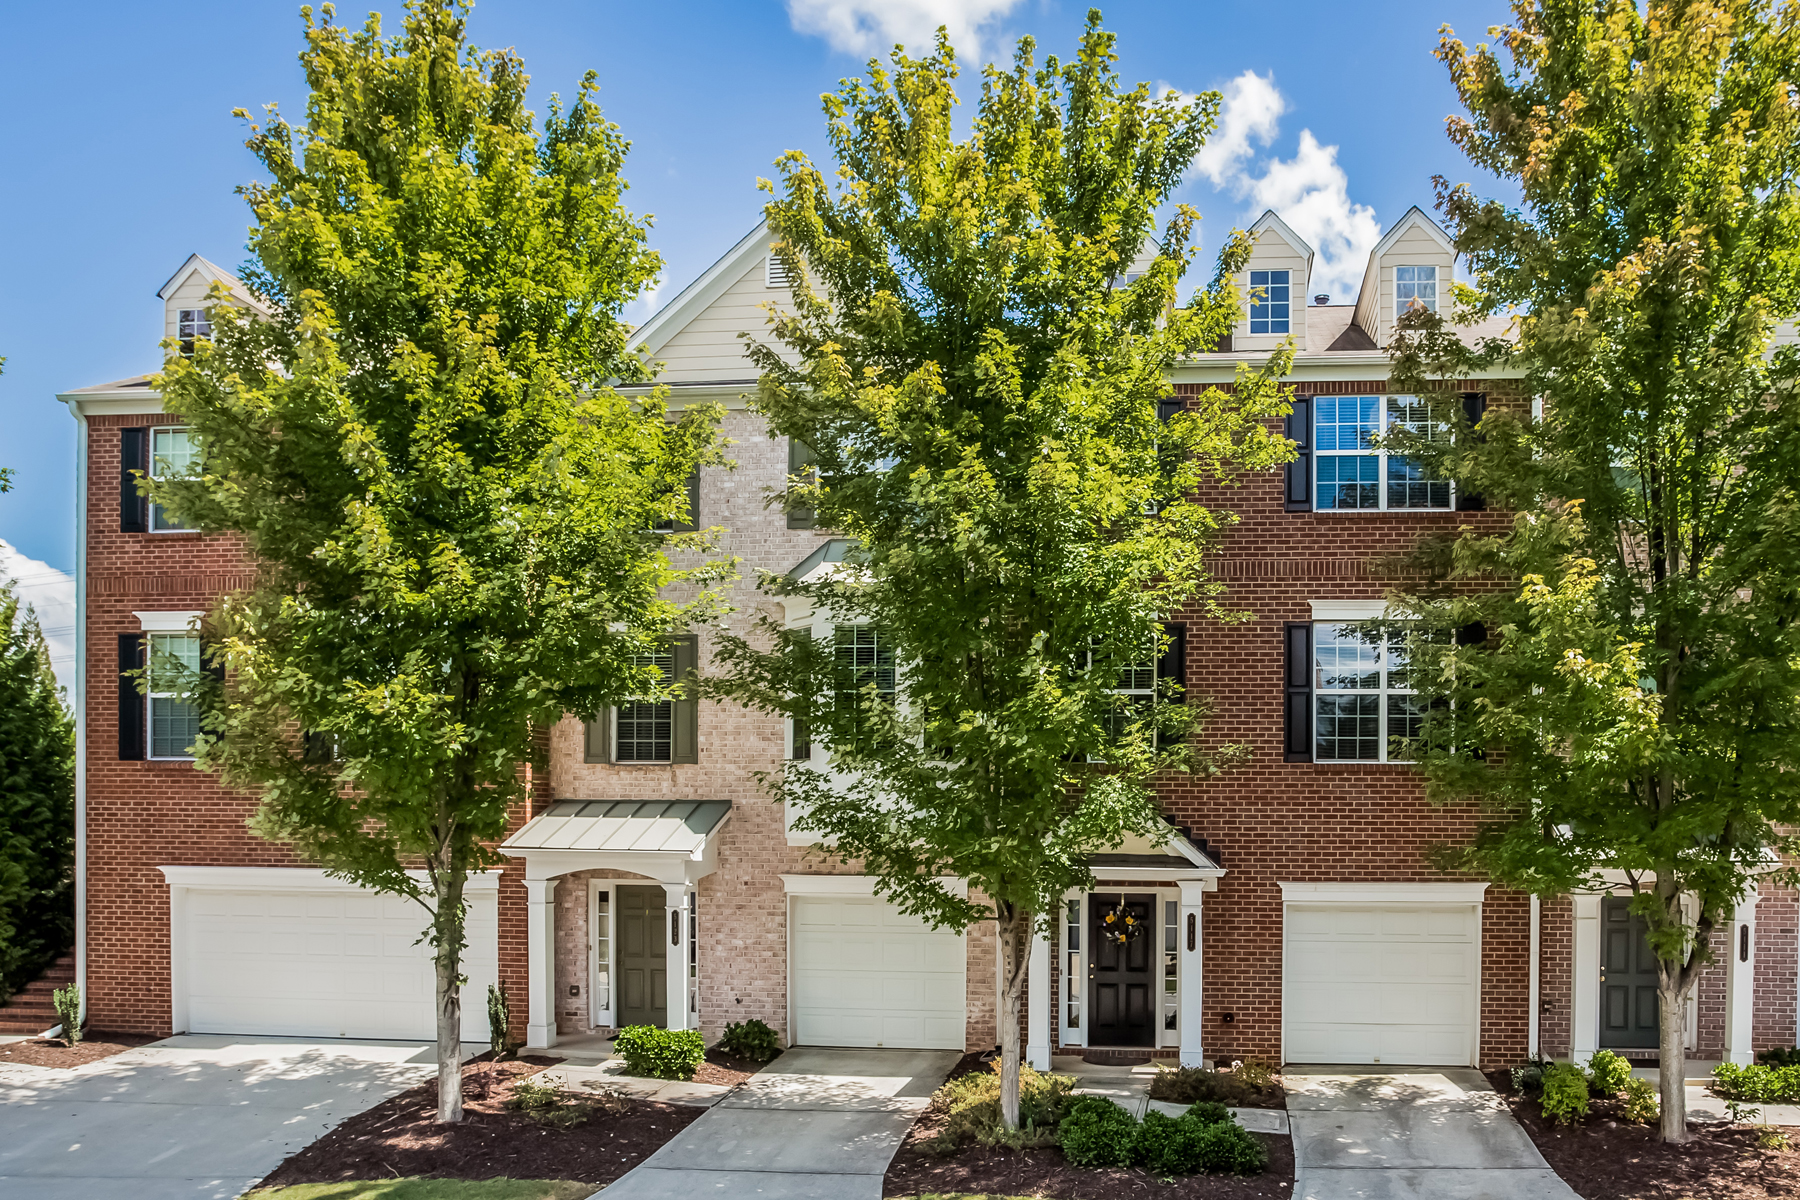 Herenhuis voor Verkoop een t Multi-level Townhome In A Beautiful Community 5117 Wellsley Bend Alpharetta, Georgië 30005 Verenigde Staten